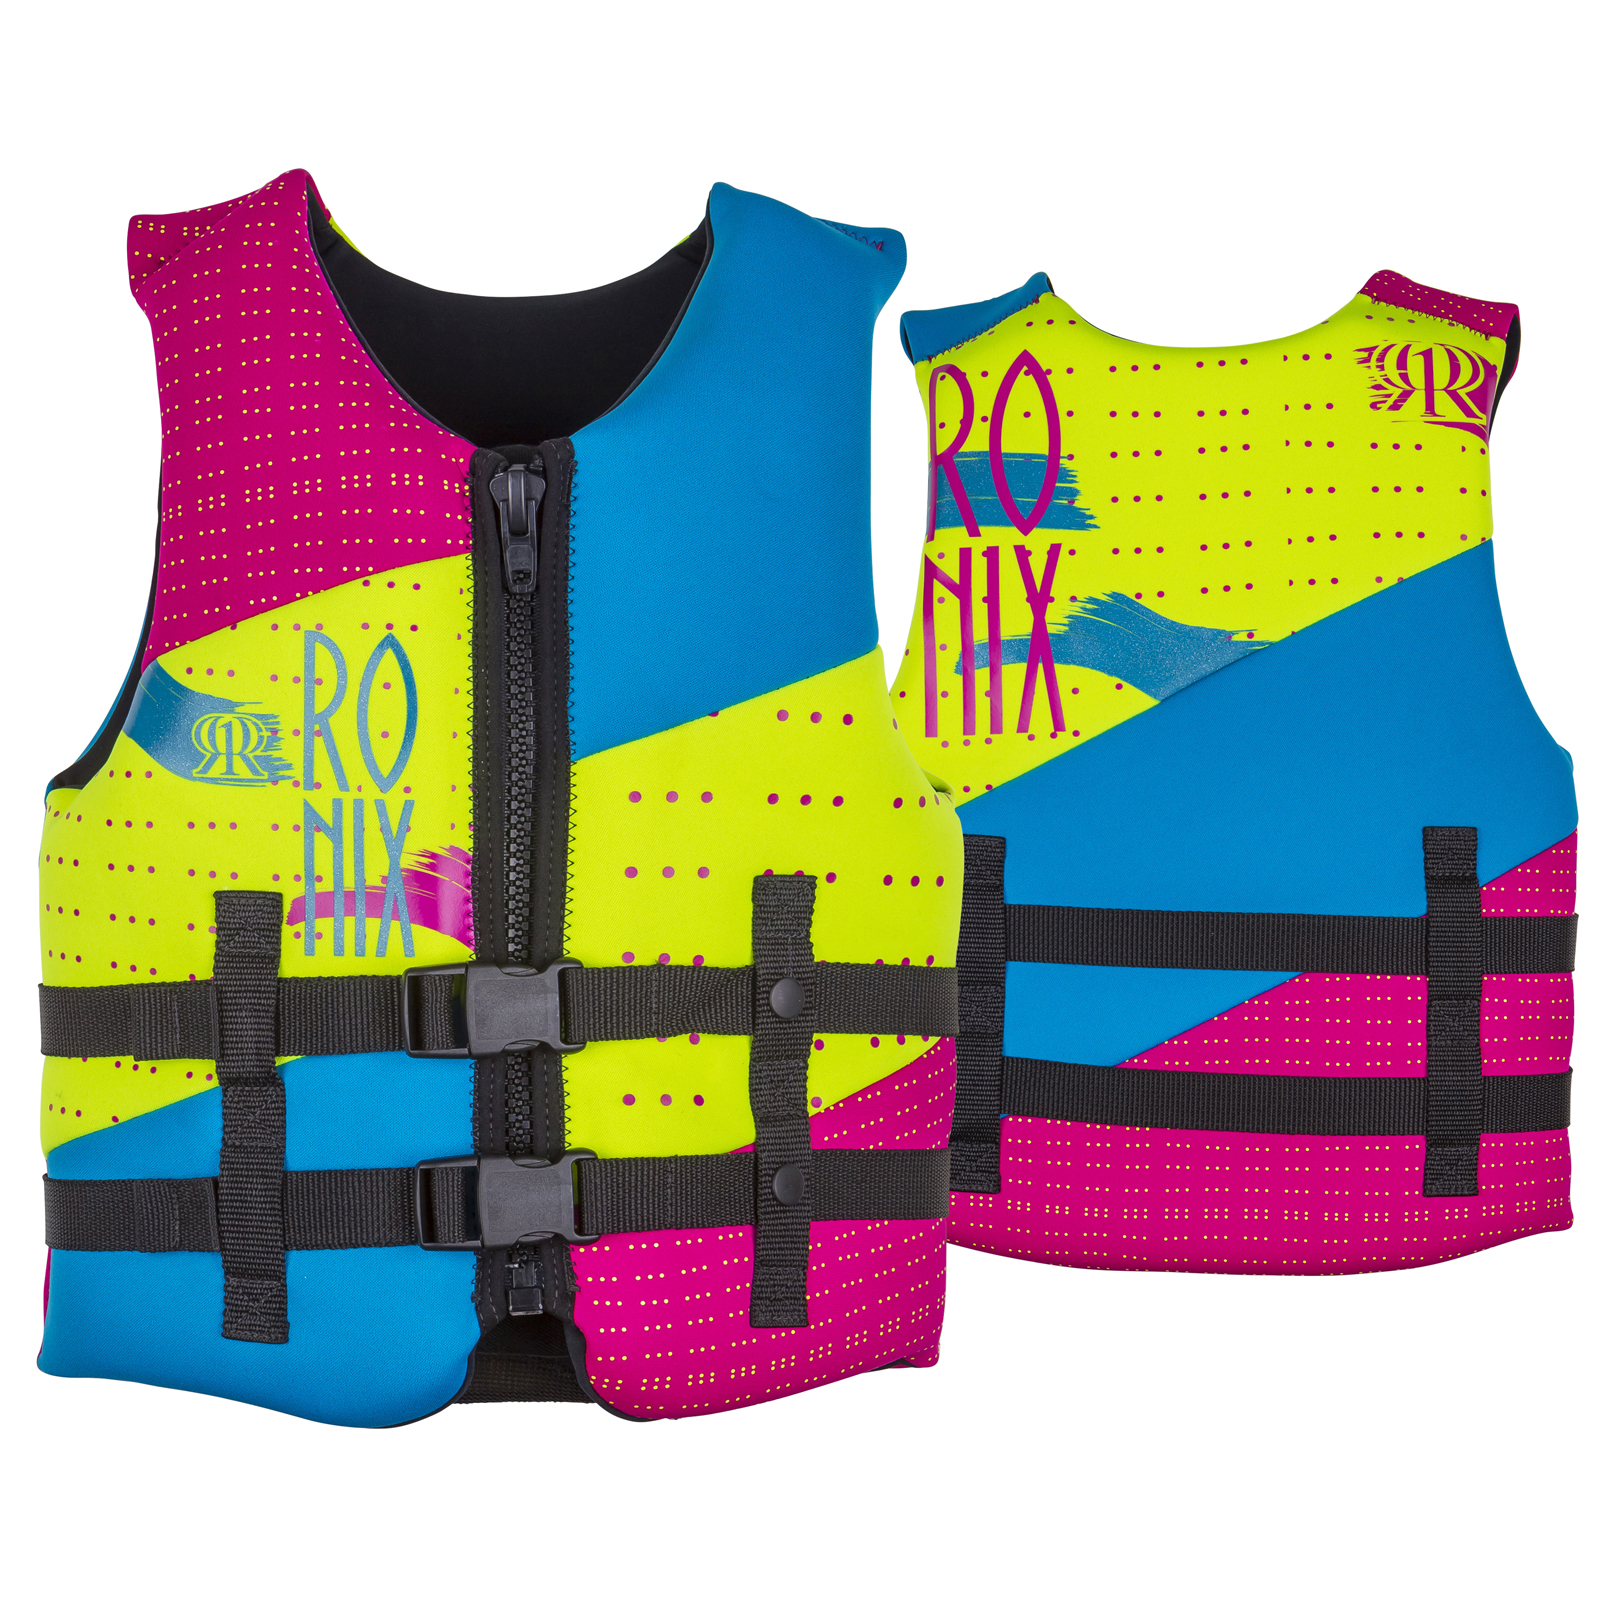 AUGUST GIRL'S LIFE VEST - YOUTH 22-40KG RONIX 2018